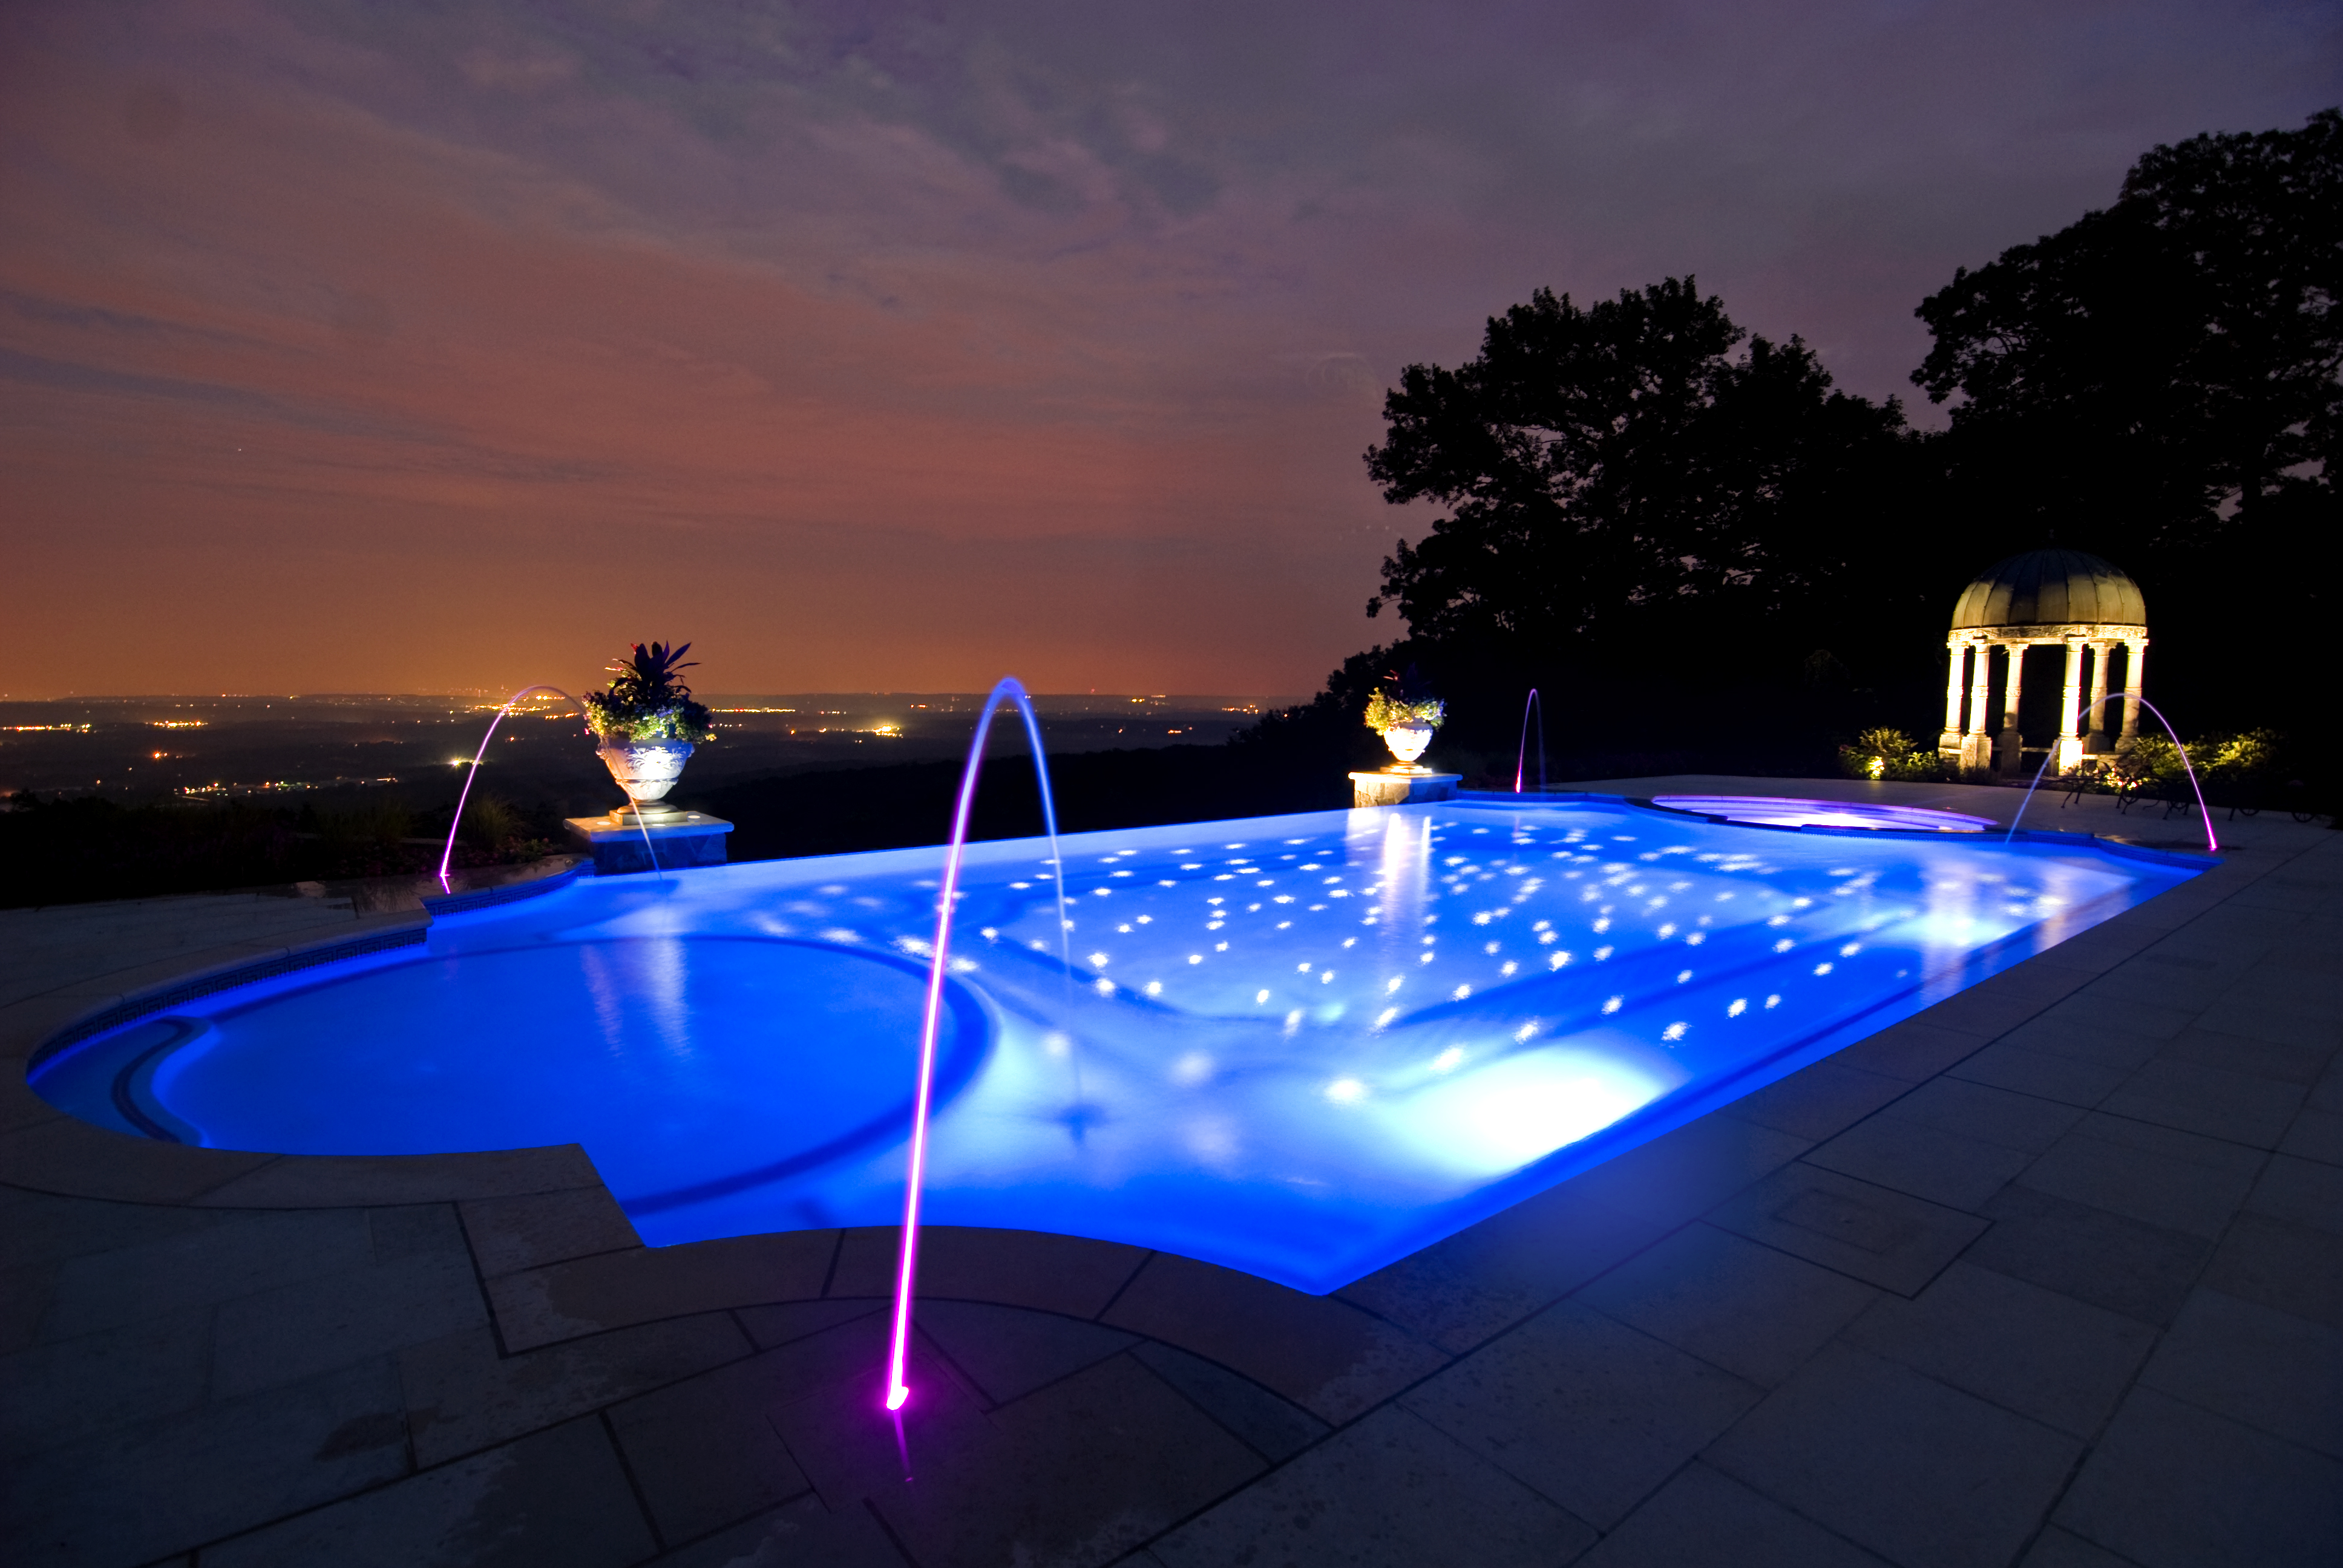 New jersey pool builder wins four awards of excellence for - Best backyard swimming pool designs ...